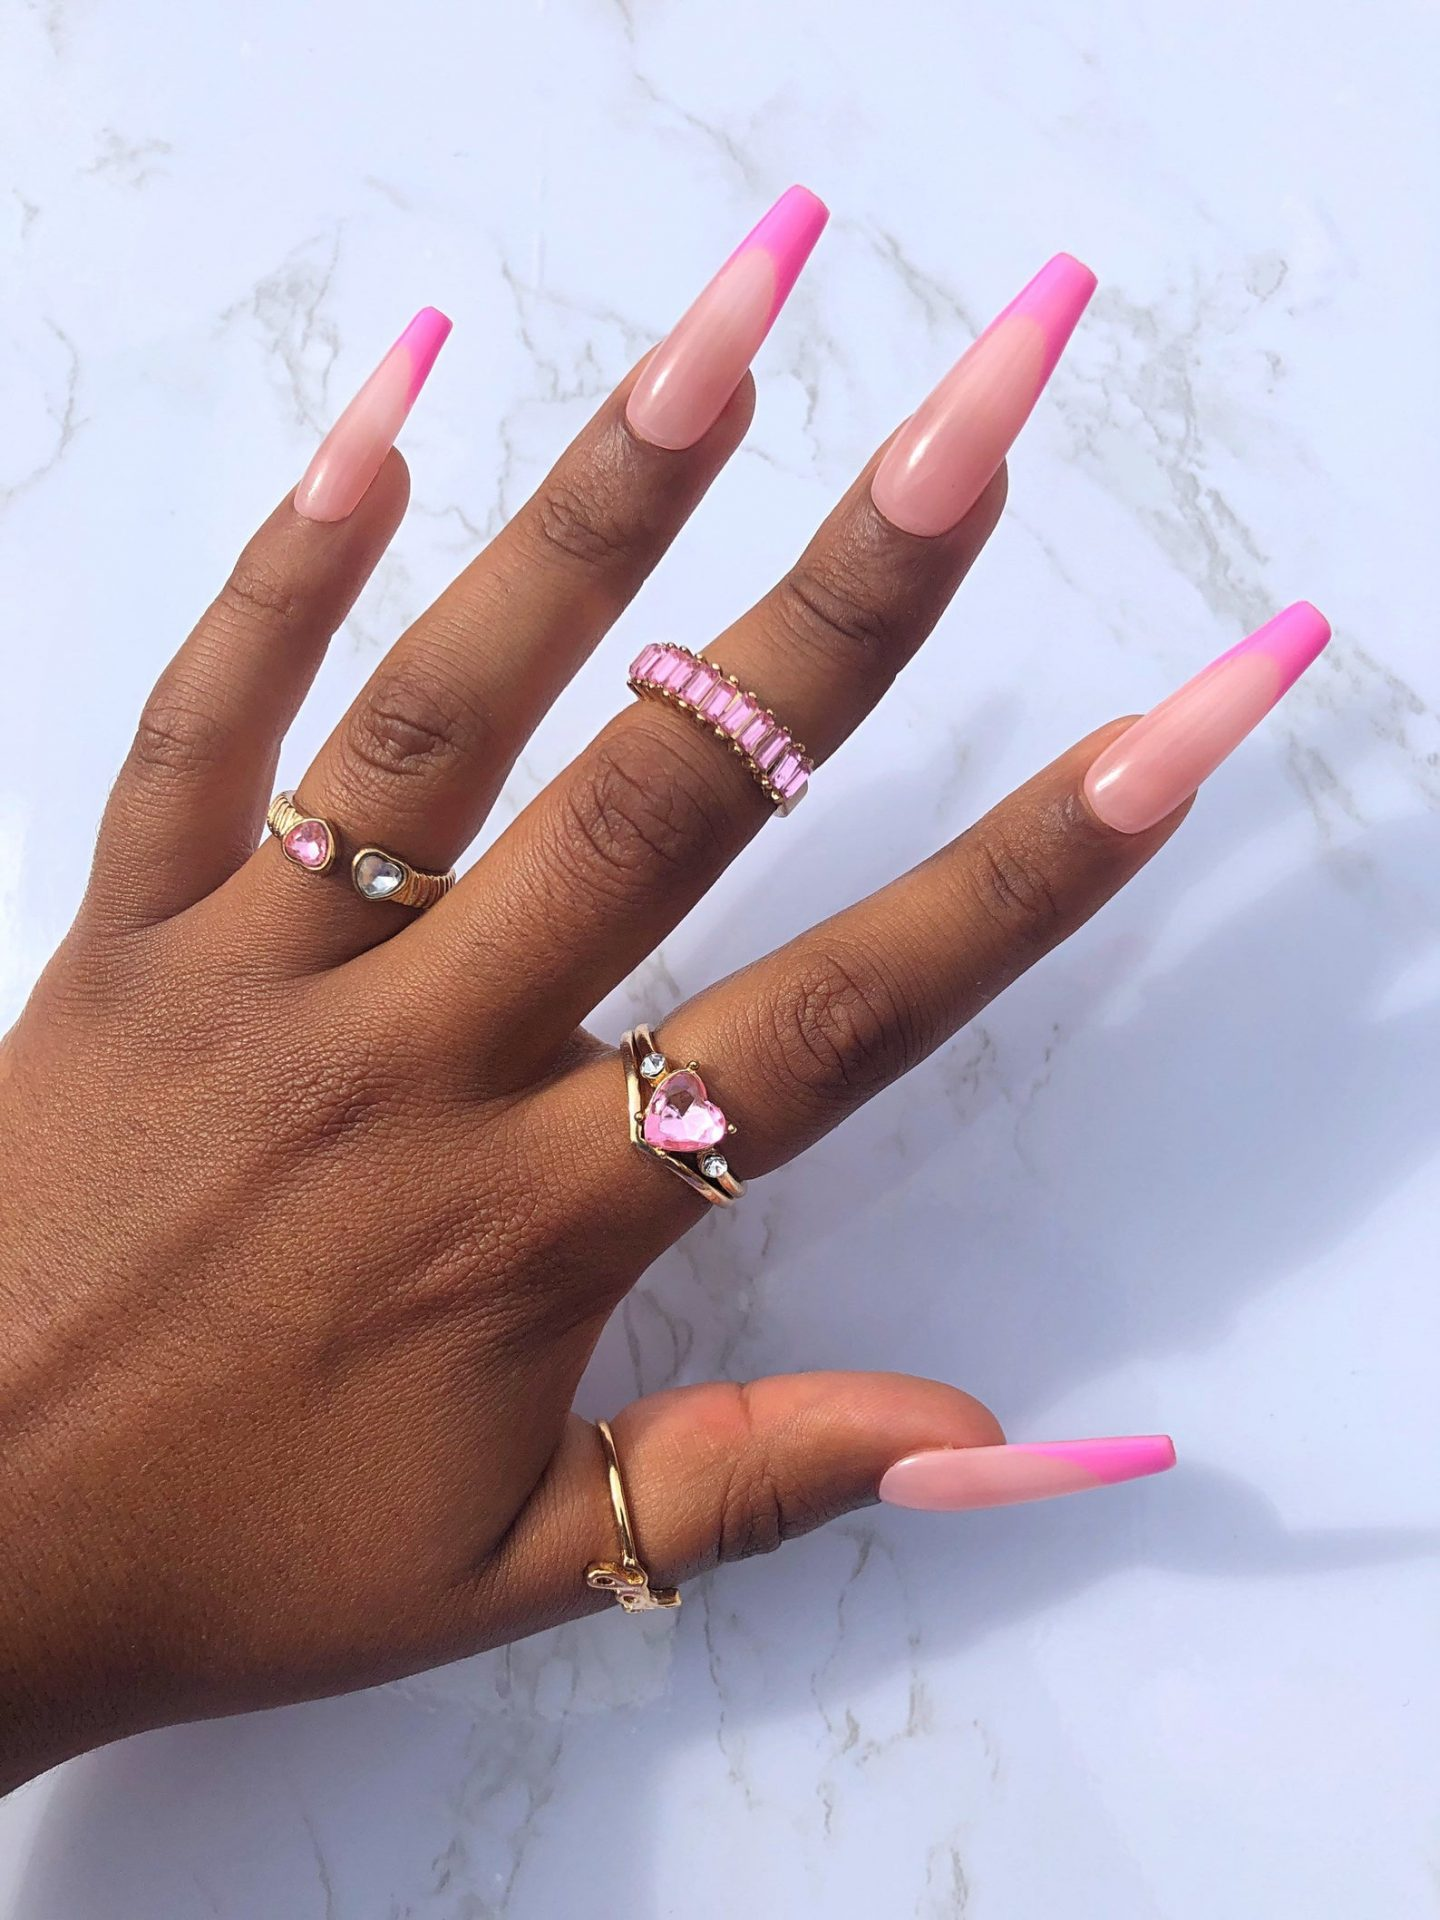 Long pink French tip nails